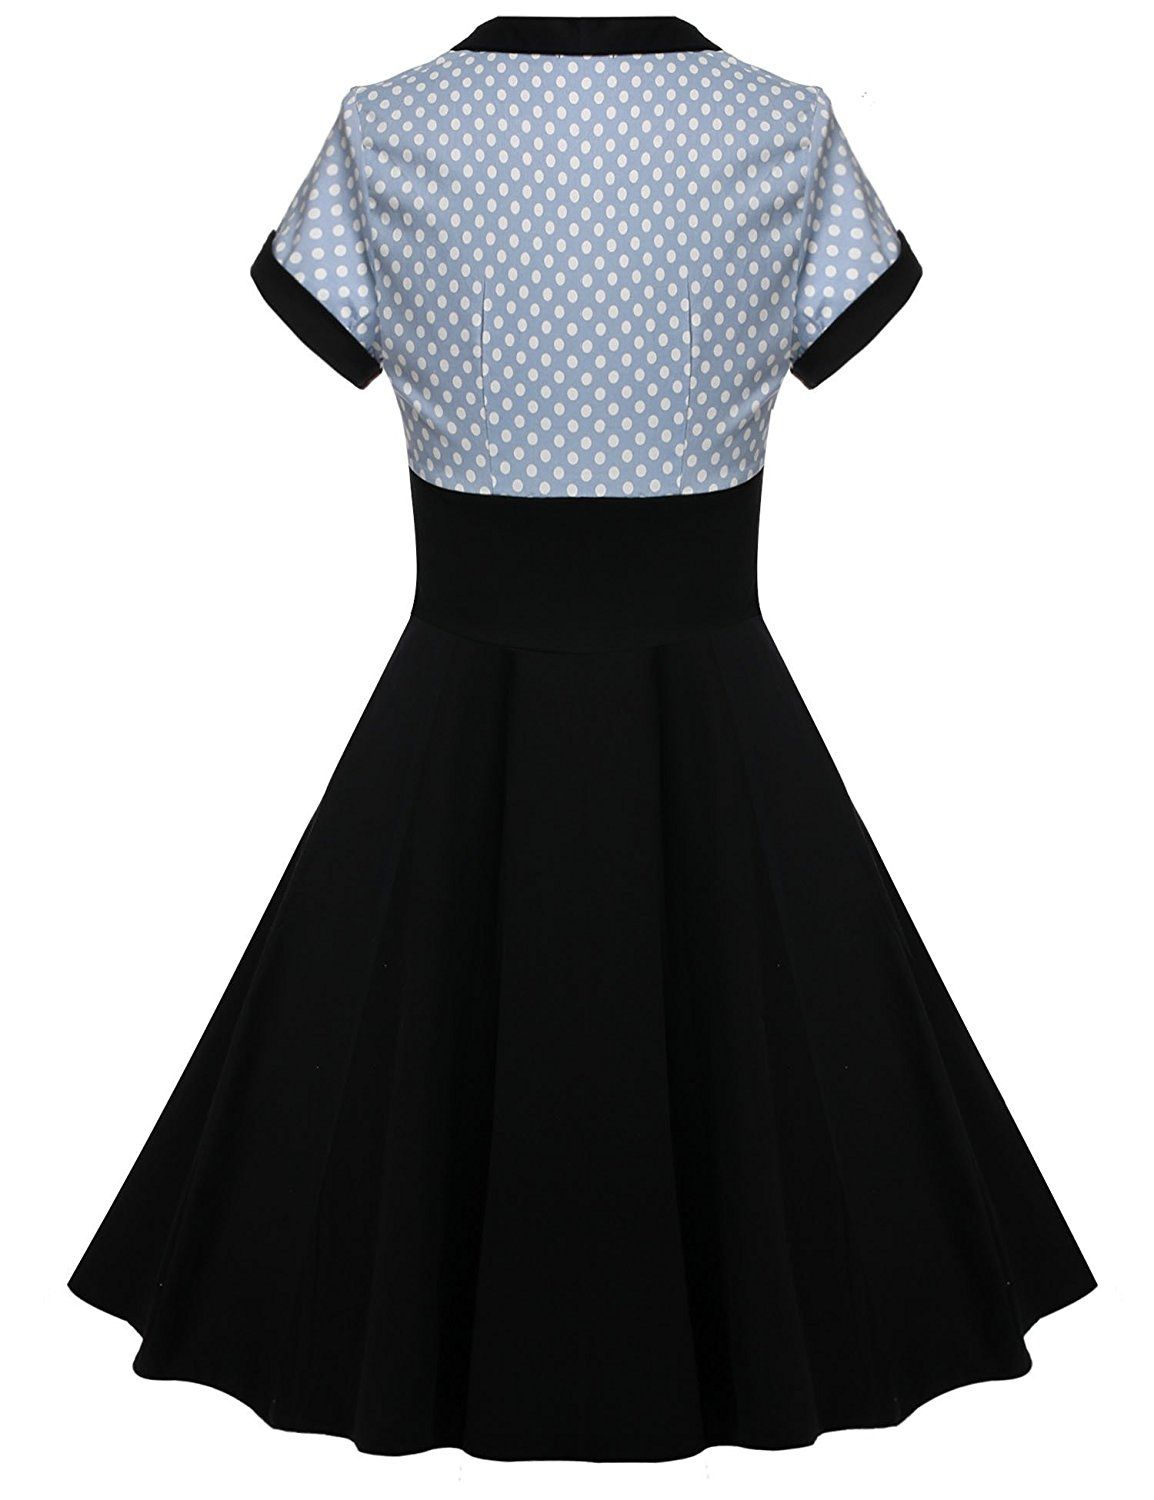 Acevog womenus short sleeve polka dots cotton vintage tea dress